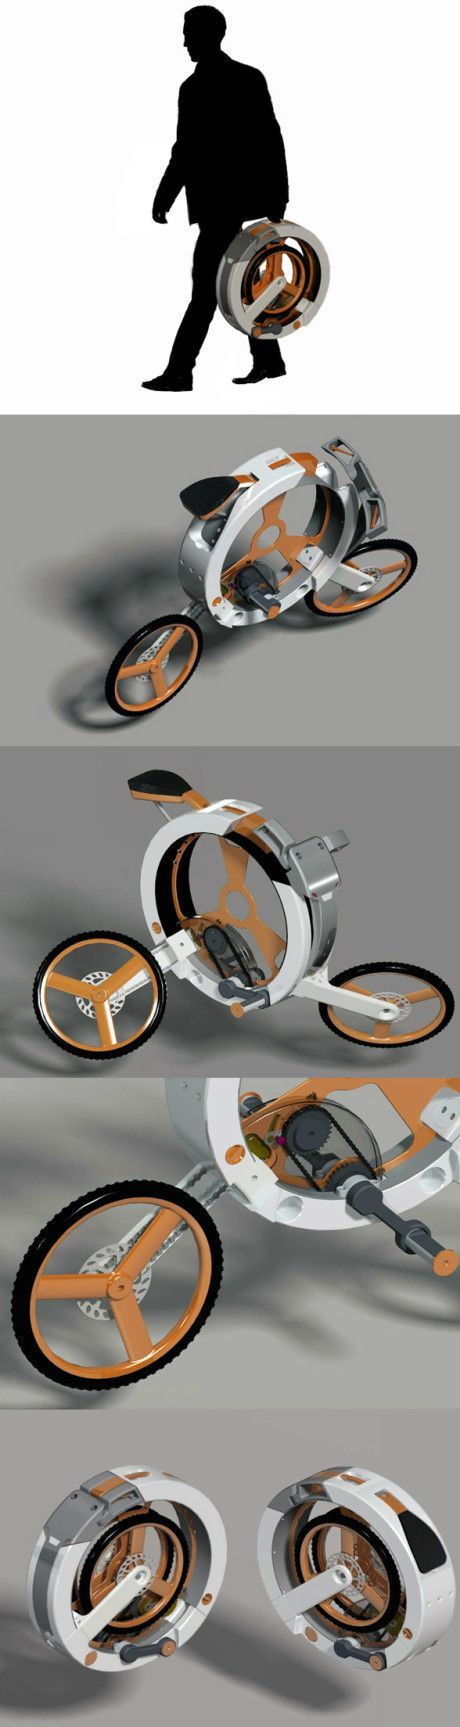 could this be the future for folding bikes cycling biking design innovation bicycles. Black Bedroom Furniture Sets. Home Design Ideas